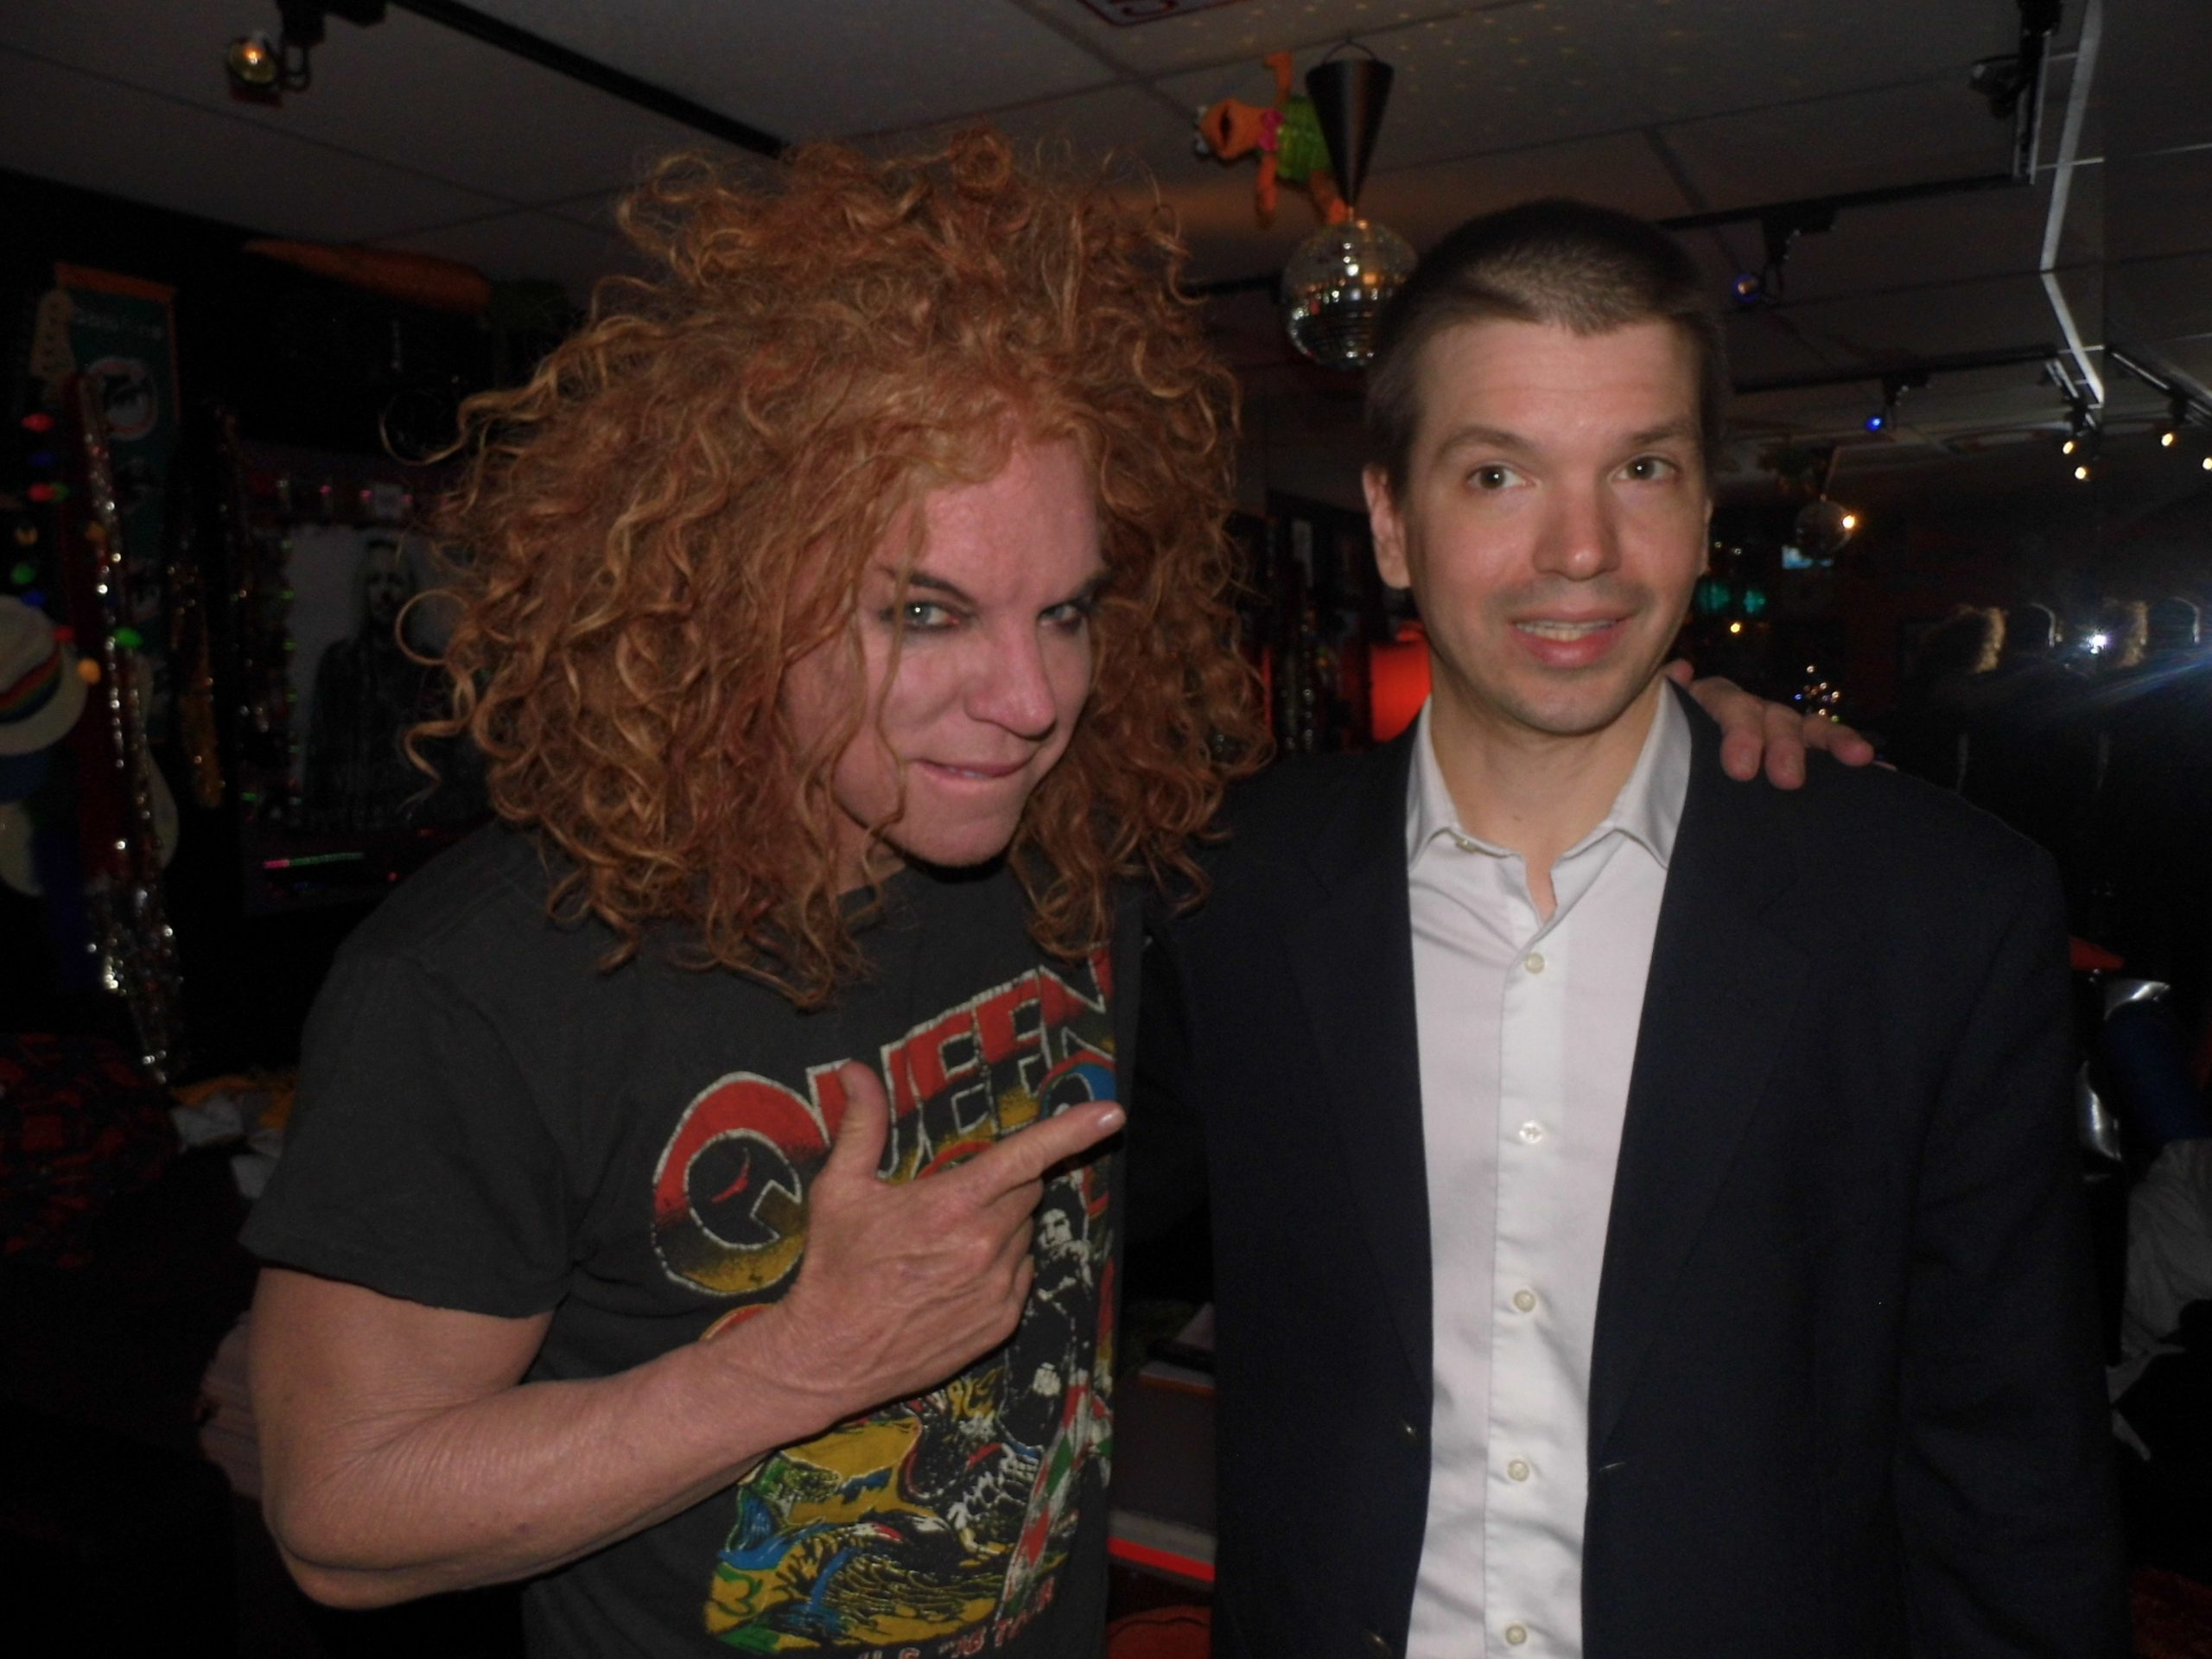 Chris Yandek, Carrot Top 2018, Chris Yandek Carrot Top, Carrot Top Dressing Room, Carrot Top Las Vegas, Carrot Top Las Vegas Show